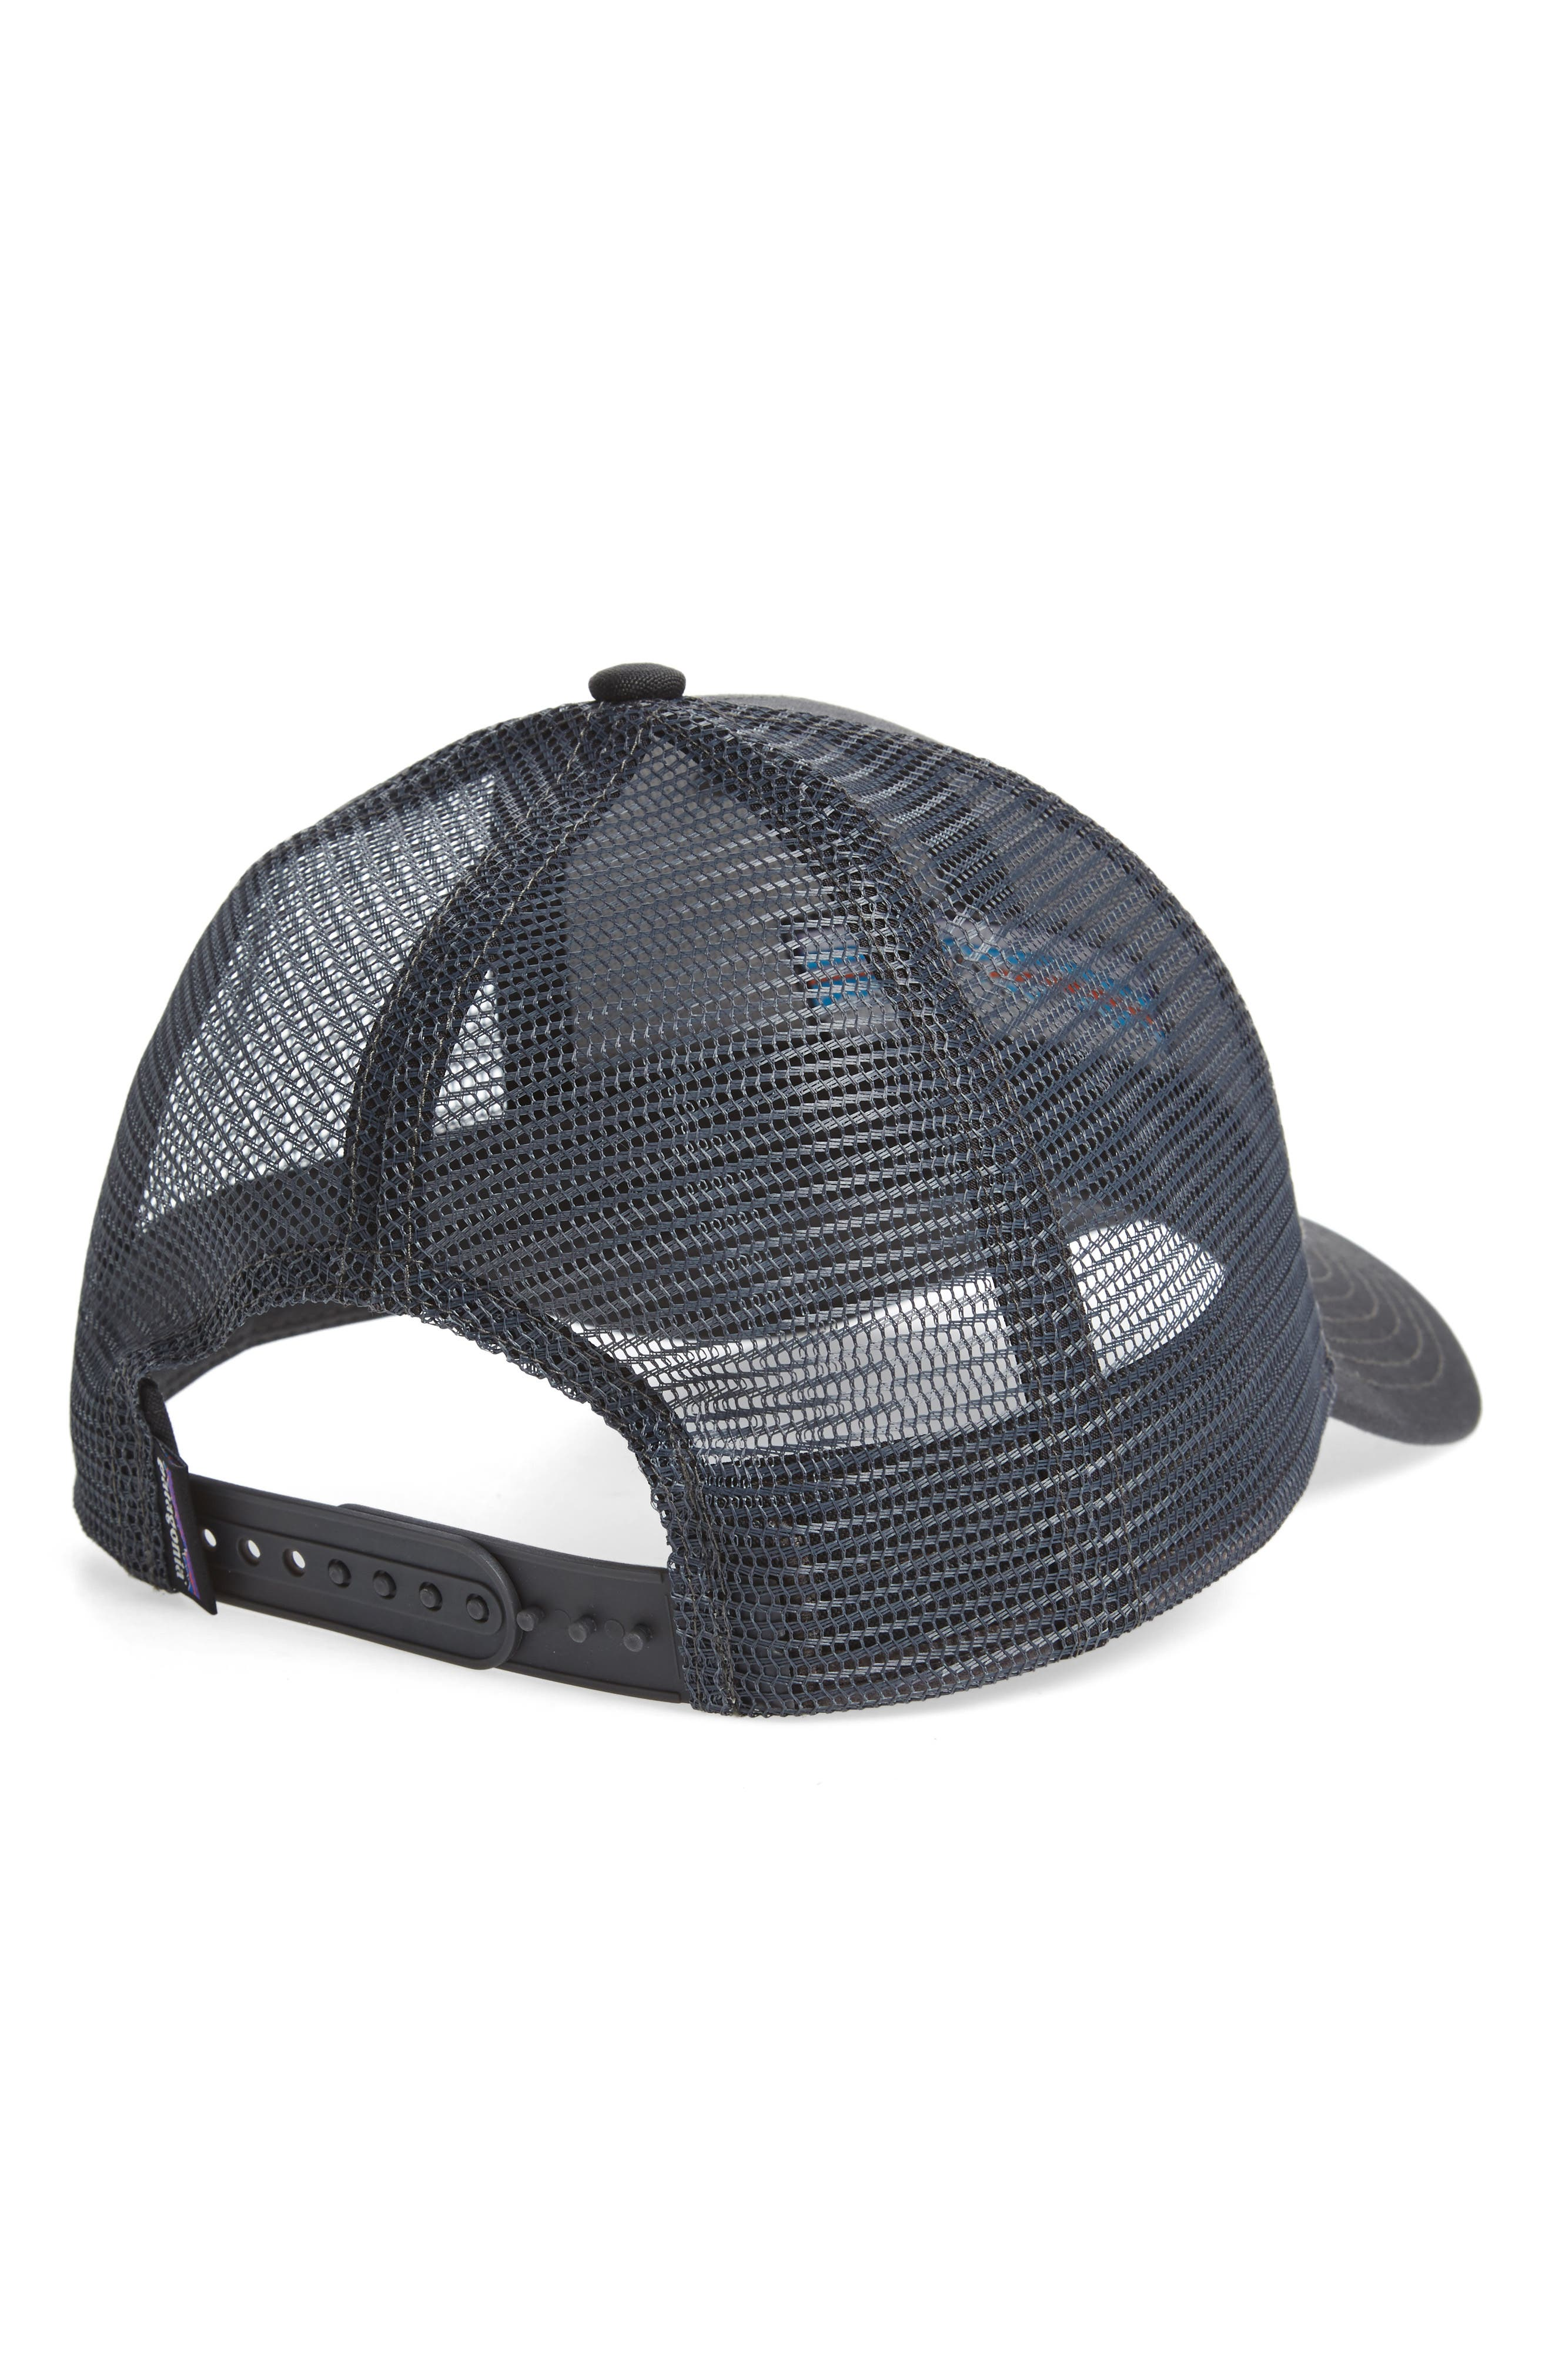 PATAGONIA, 'PG - Lo Pro' Trucker Hat, Alternate thumbnail 2, color, FORGE GREY/ FORGE GREY